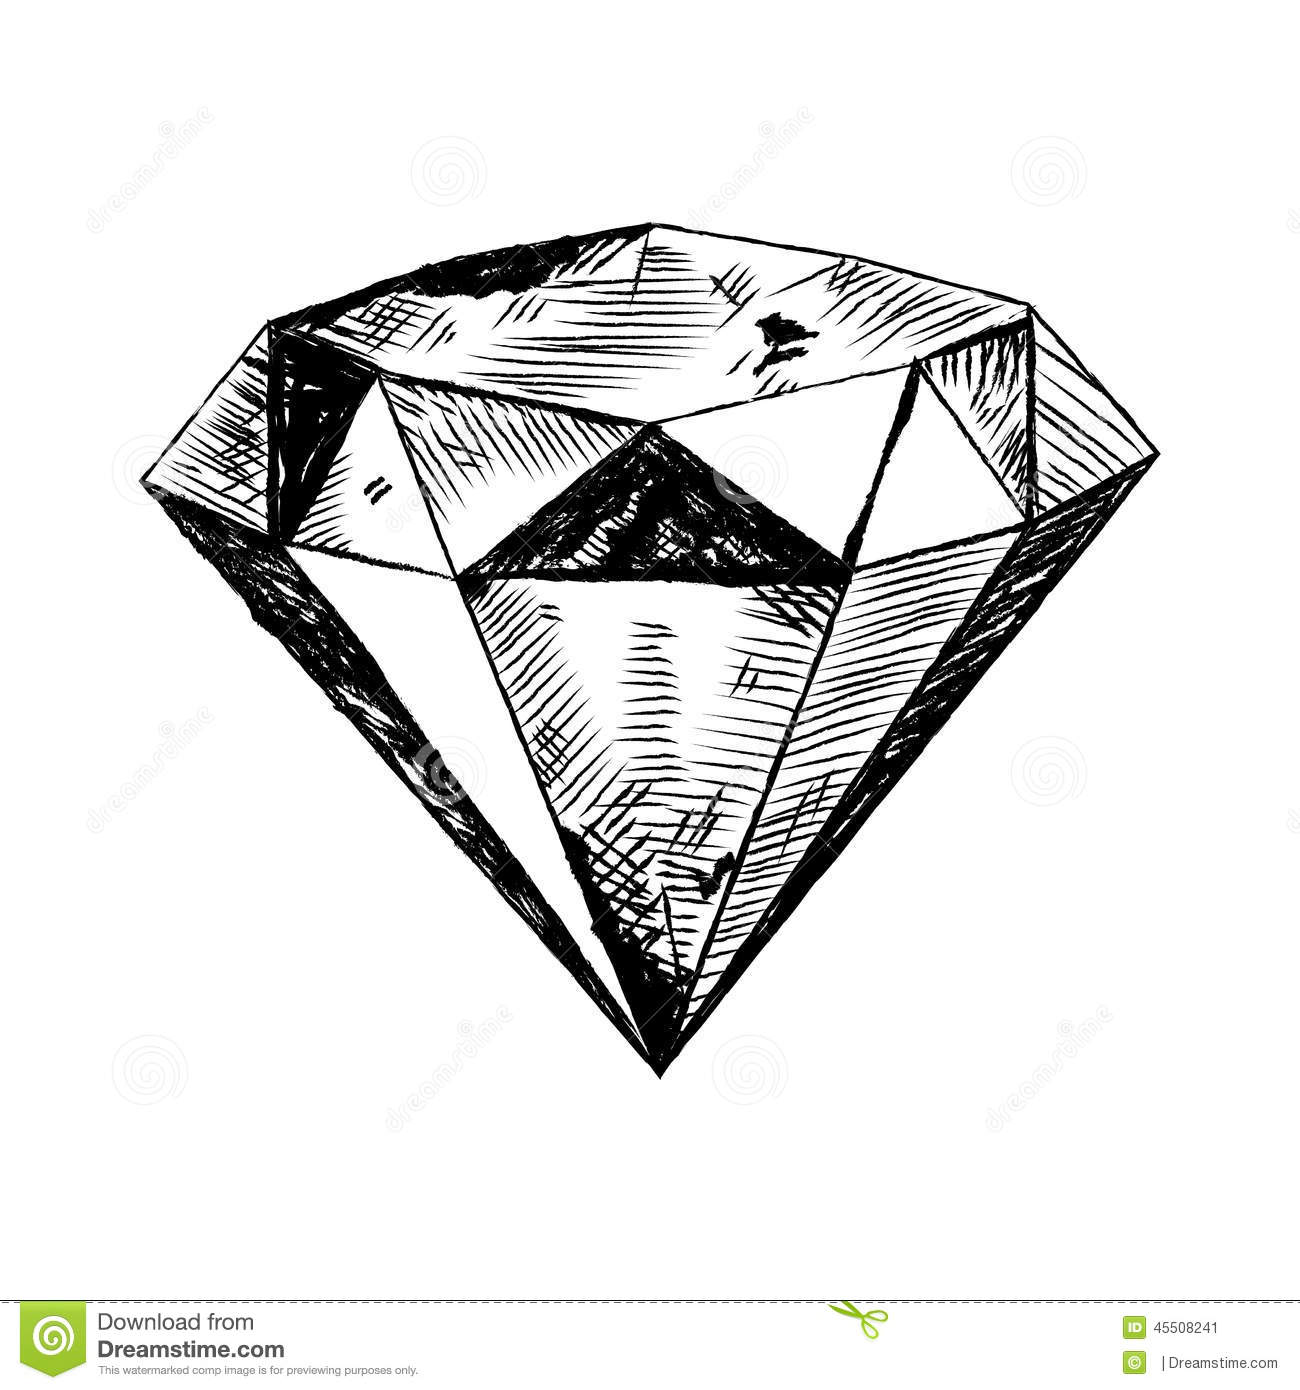 diamond in the rough illustration stock vector image